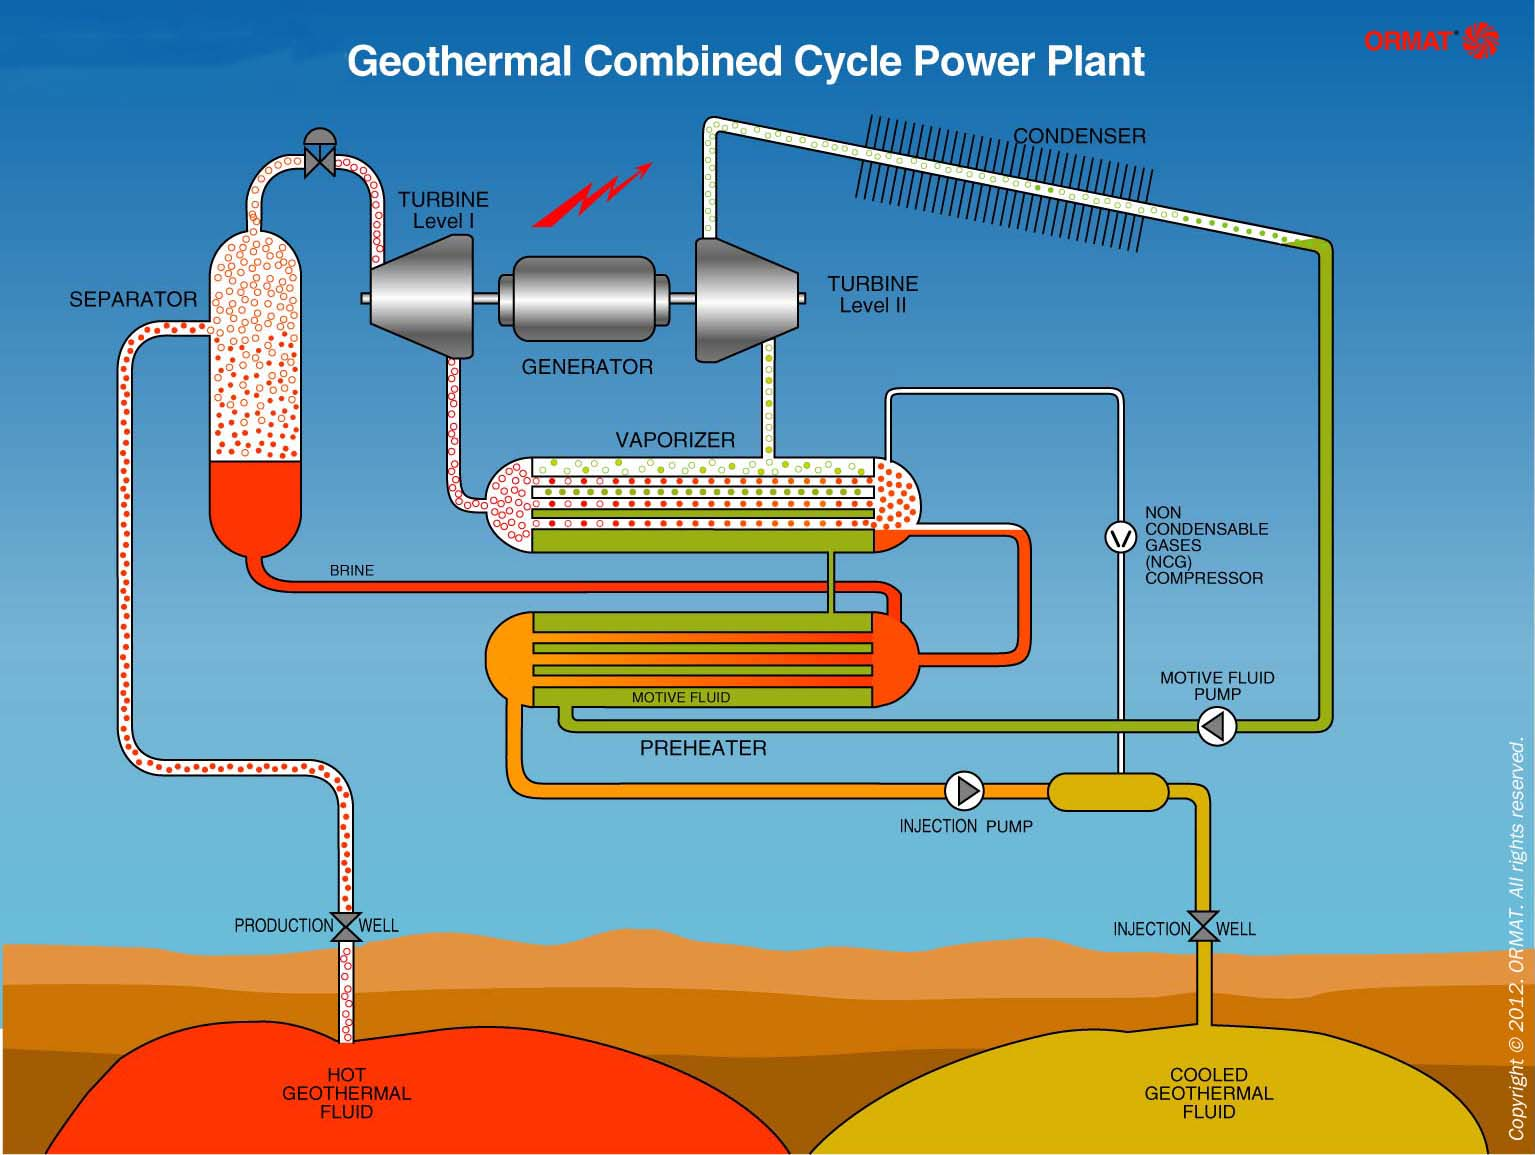 efficiency of geothermal power plants a Experts say geothermal energy is cleaner, more efficient geothermal plants release a how evaporation from lakes and reservoirs could sustainably power a.